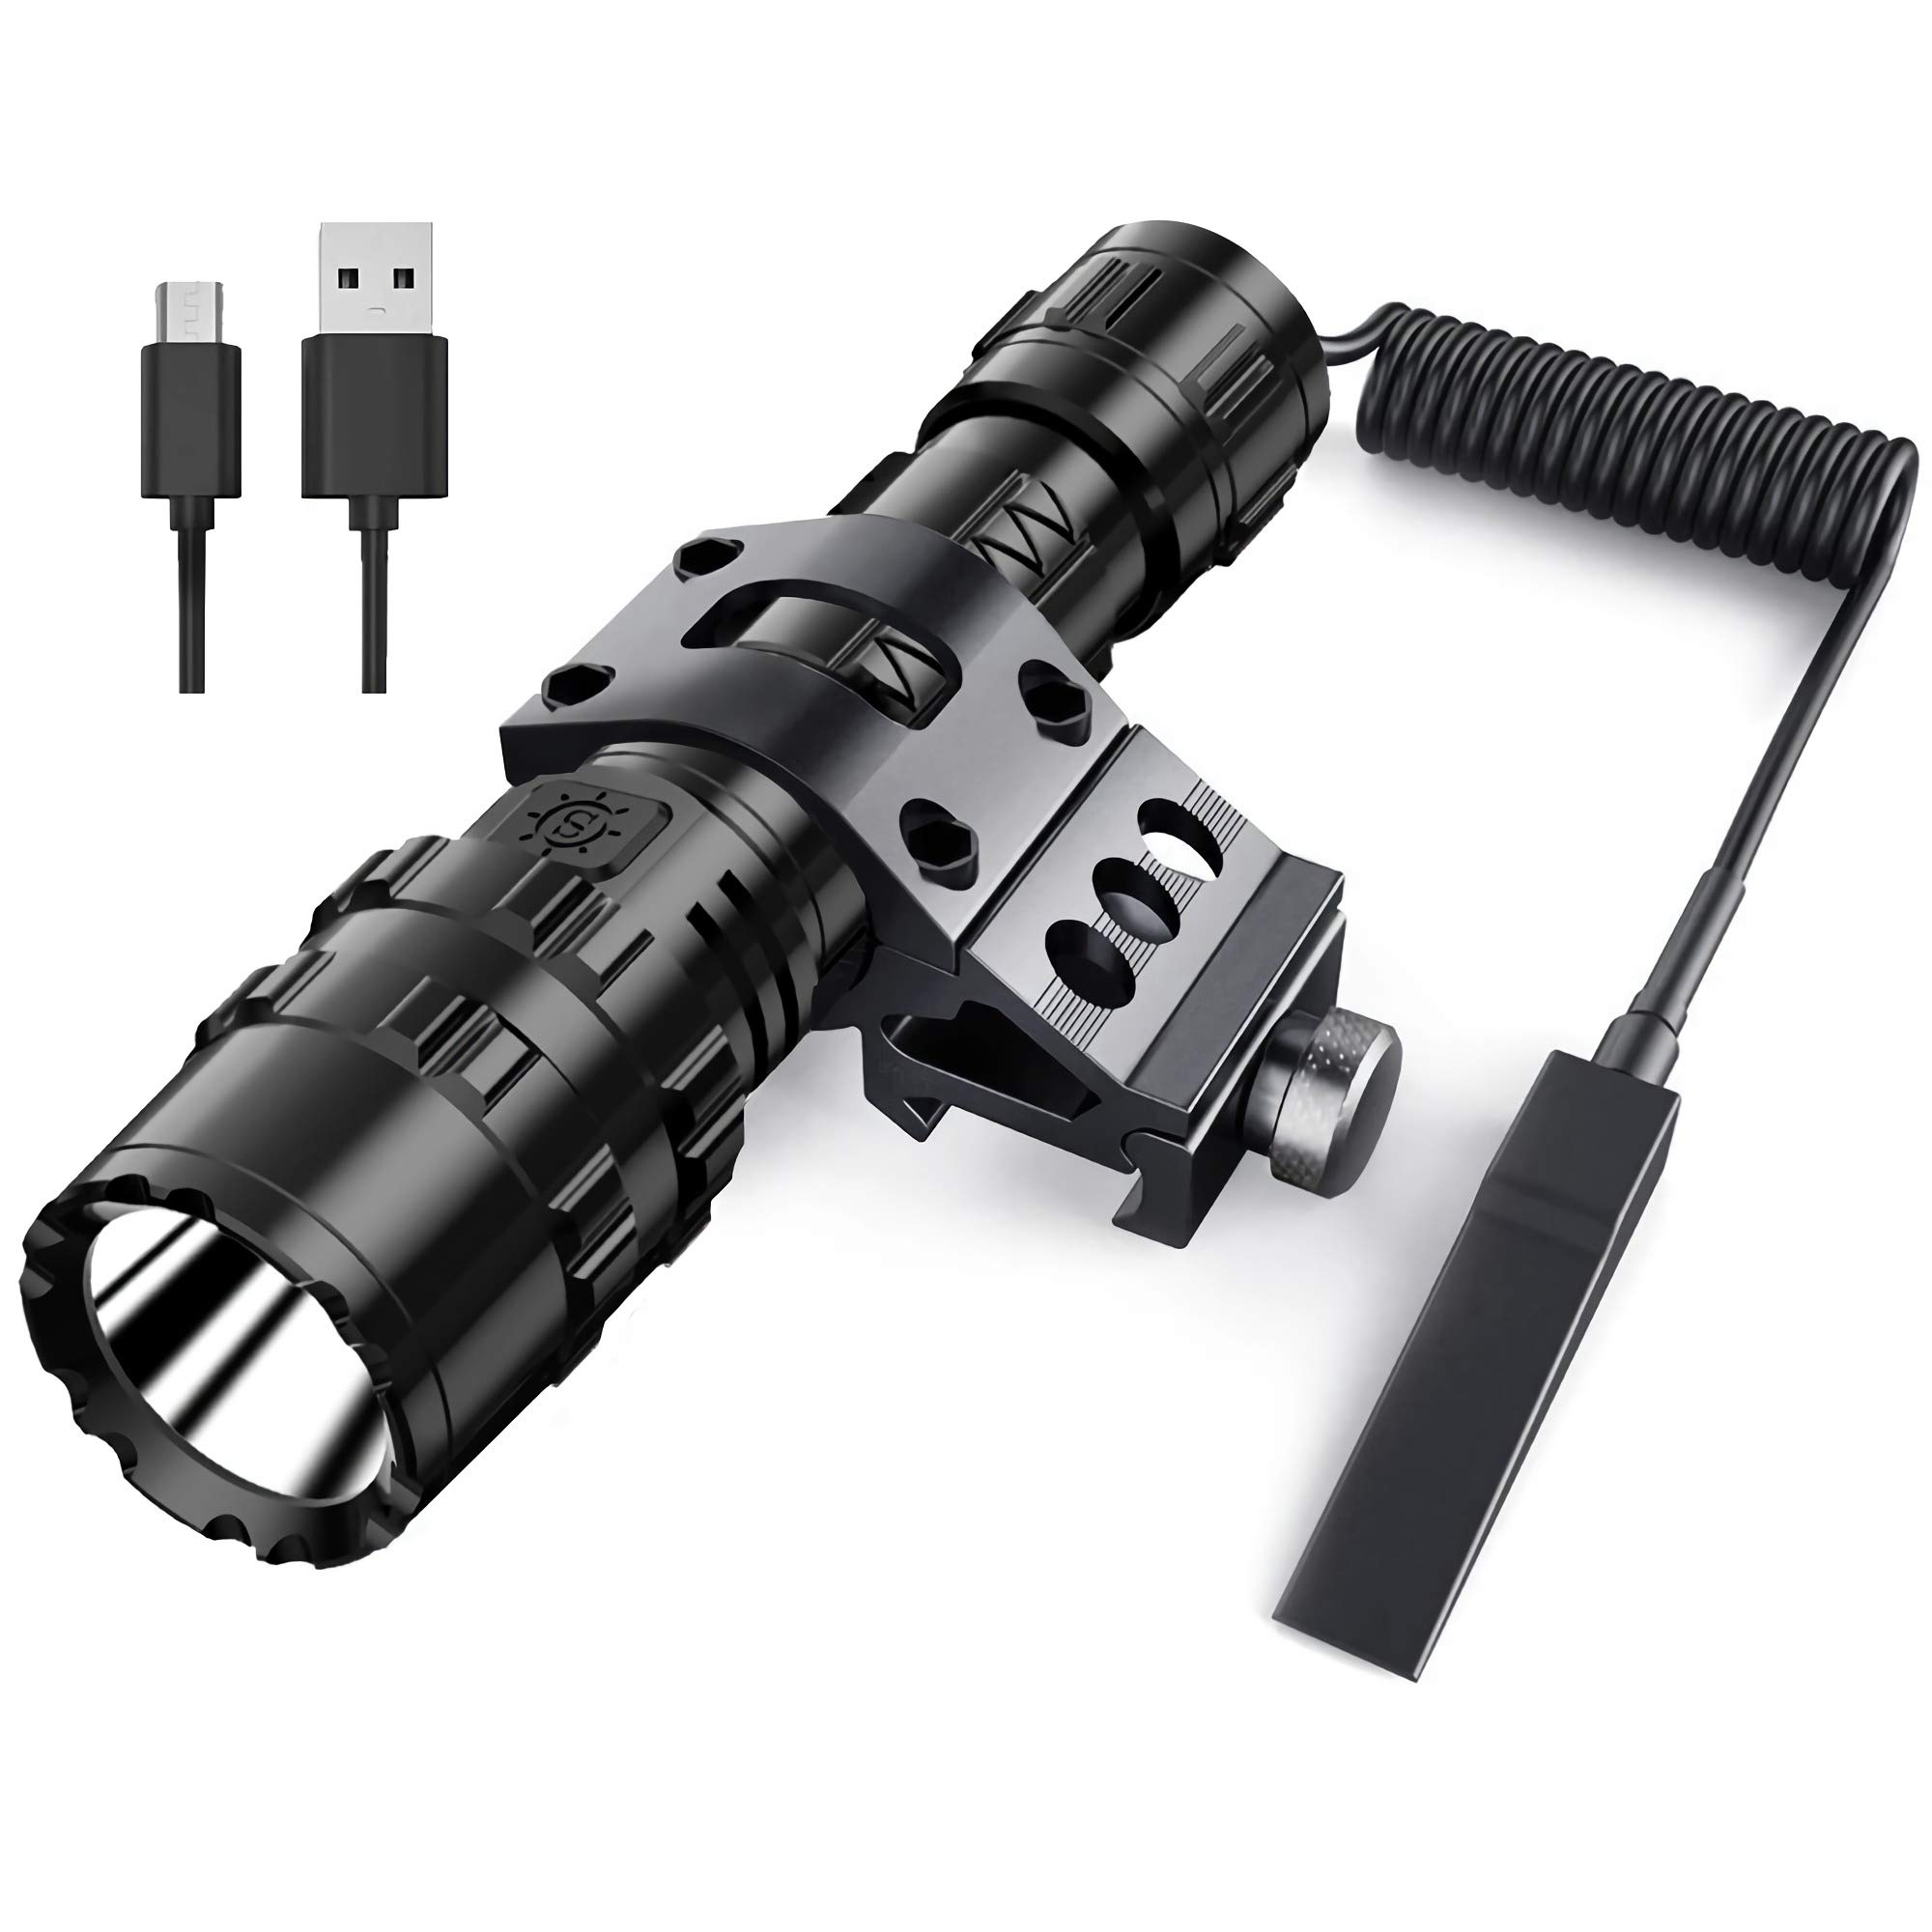 POVAST Tactical Flashlight Rechargeable Pressure